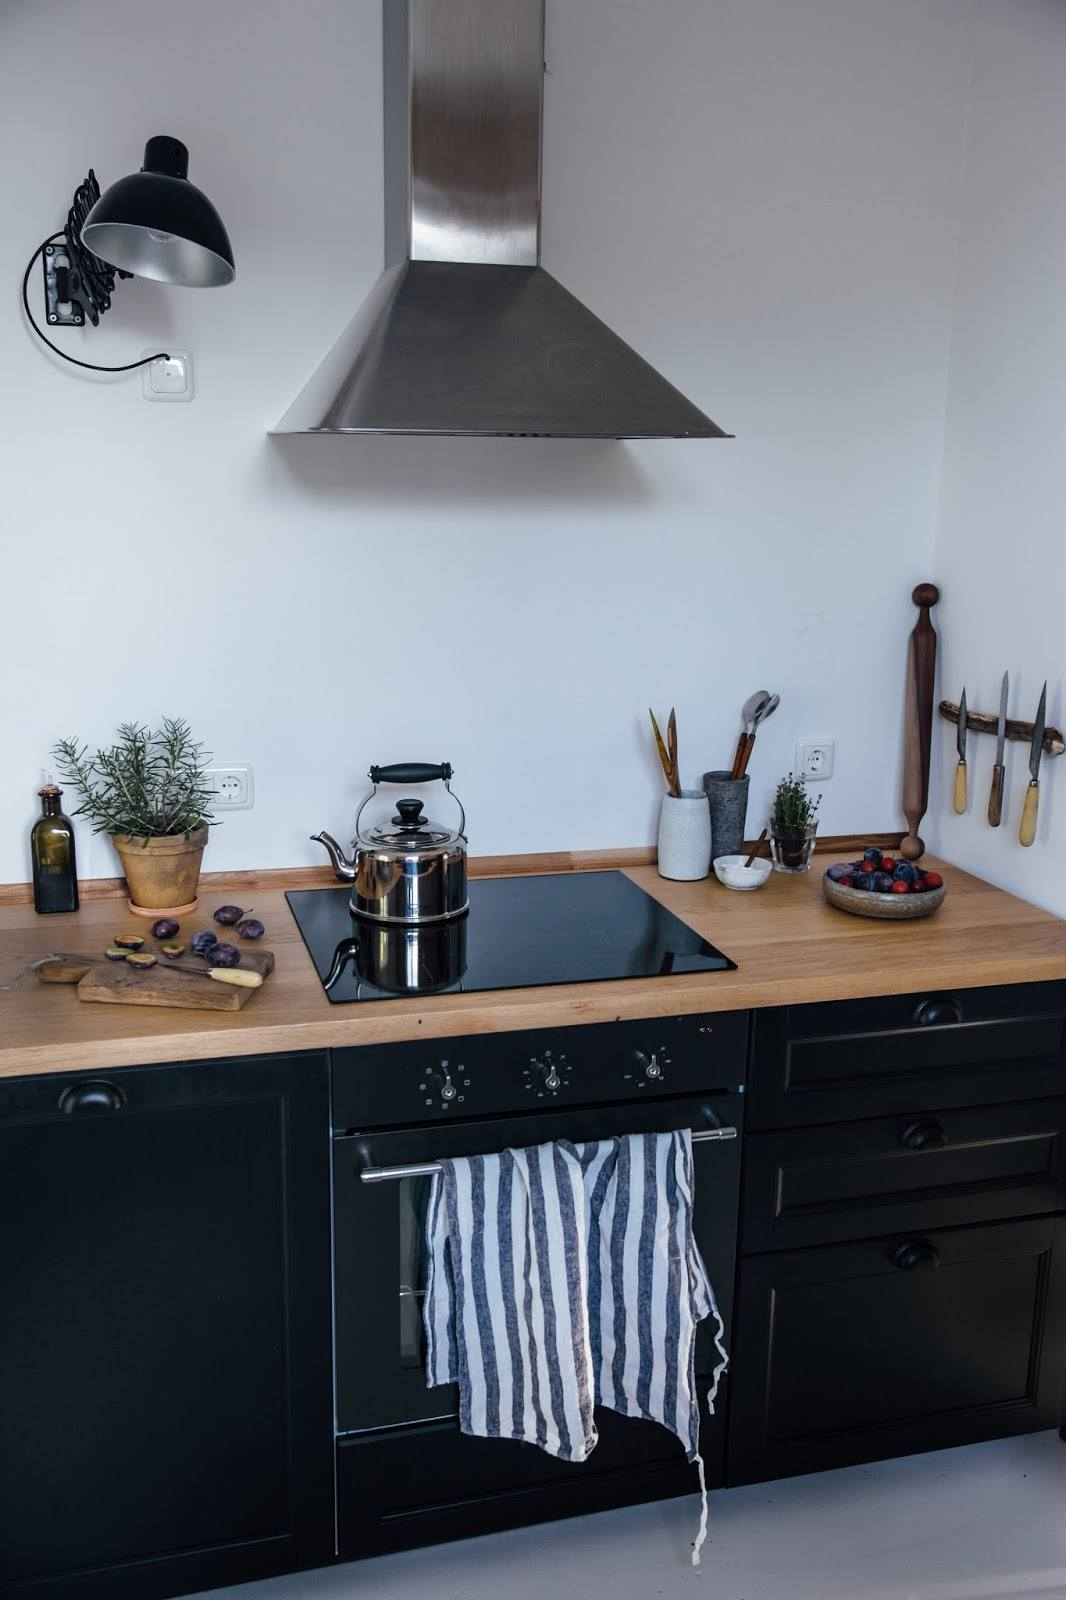 Welche Spülmaschine Passt In Ikea Küche Our New Ikea Kitchen In The Countryside Our Food Stories